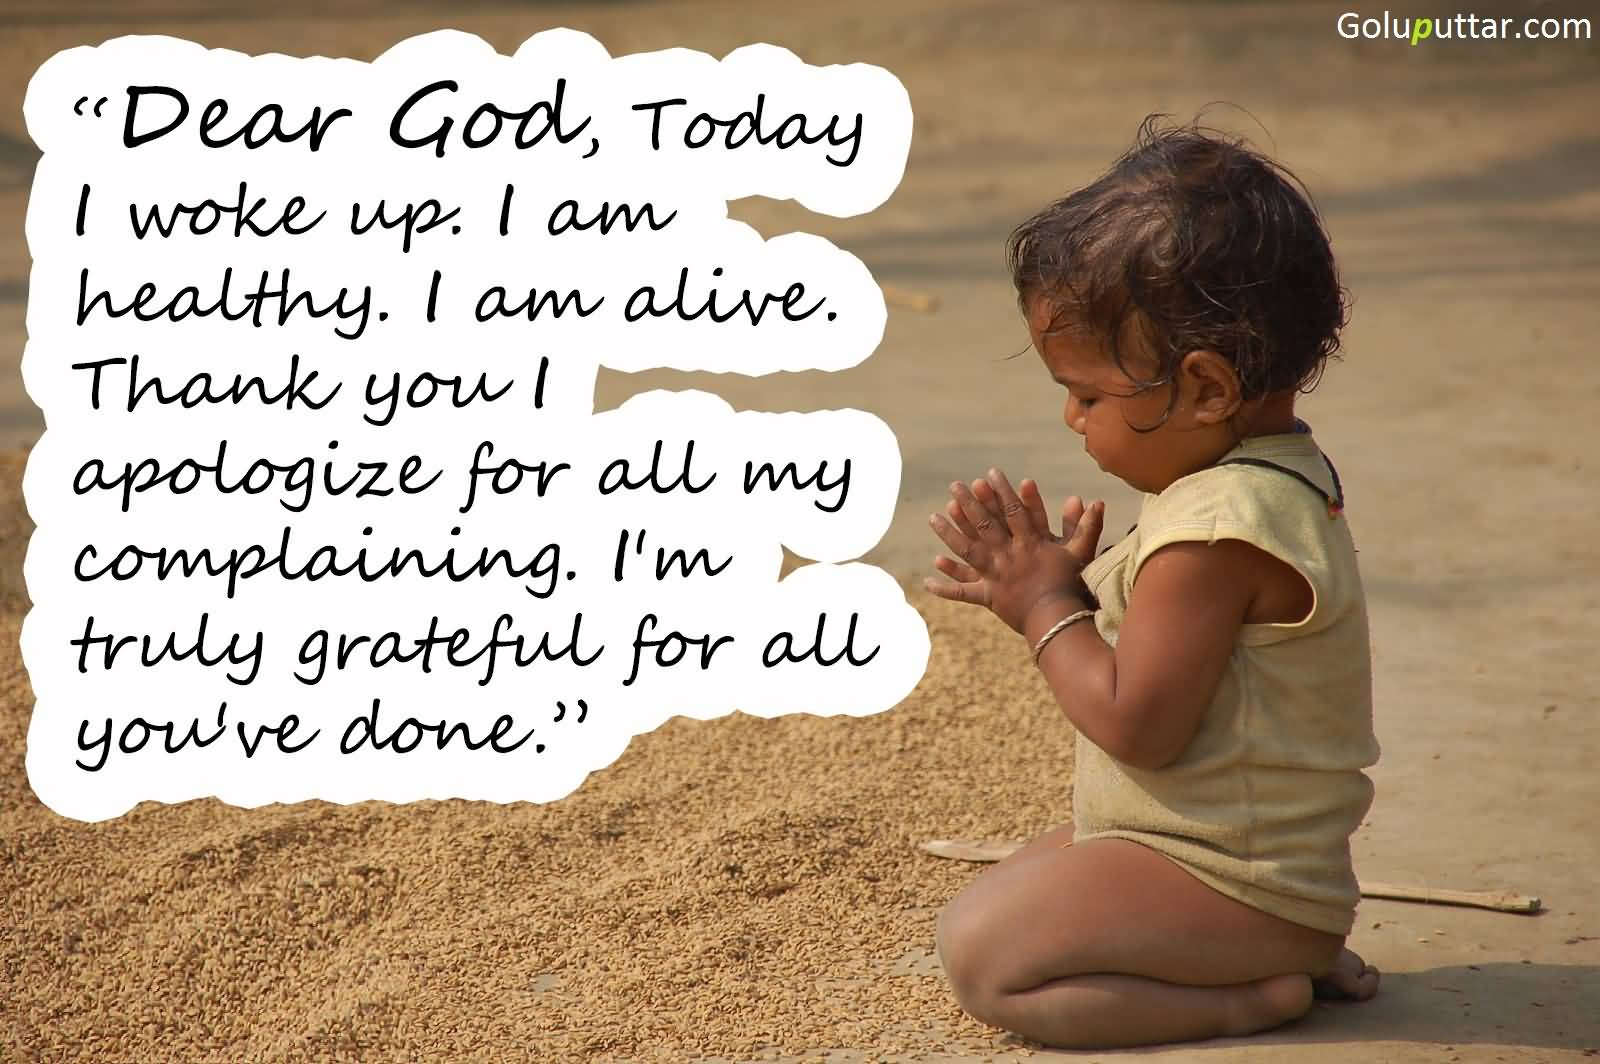 Awesome Thank You Quote I\'m Grateful To You God | Goluputtar